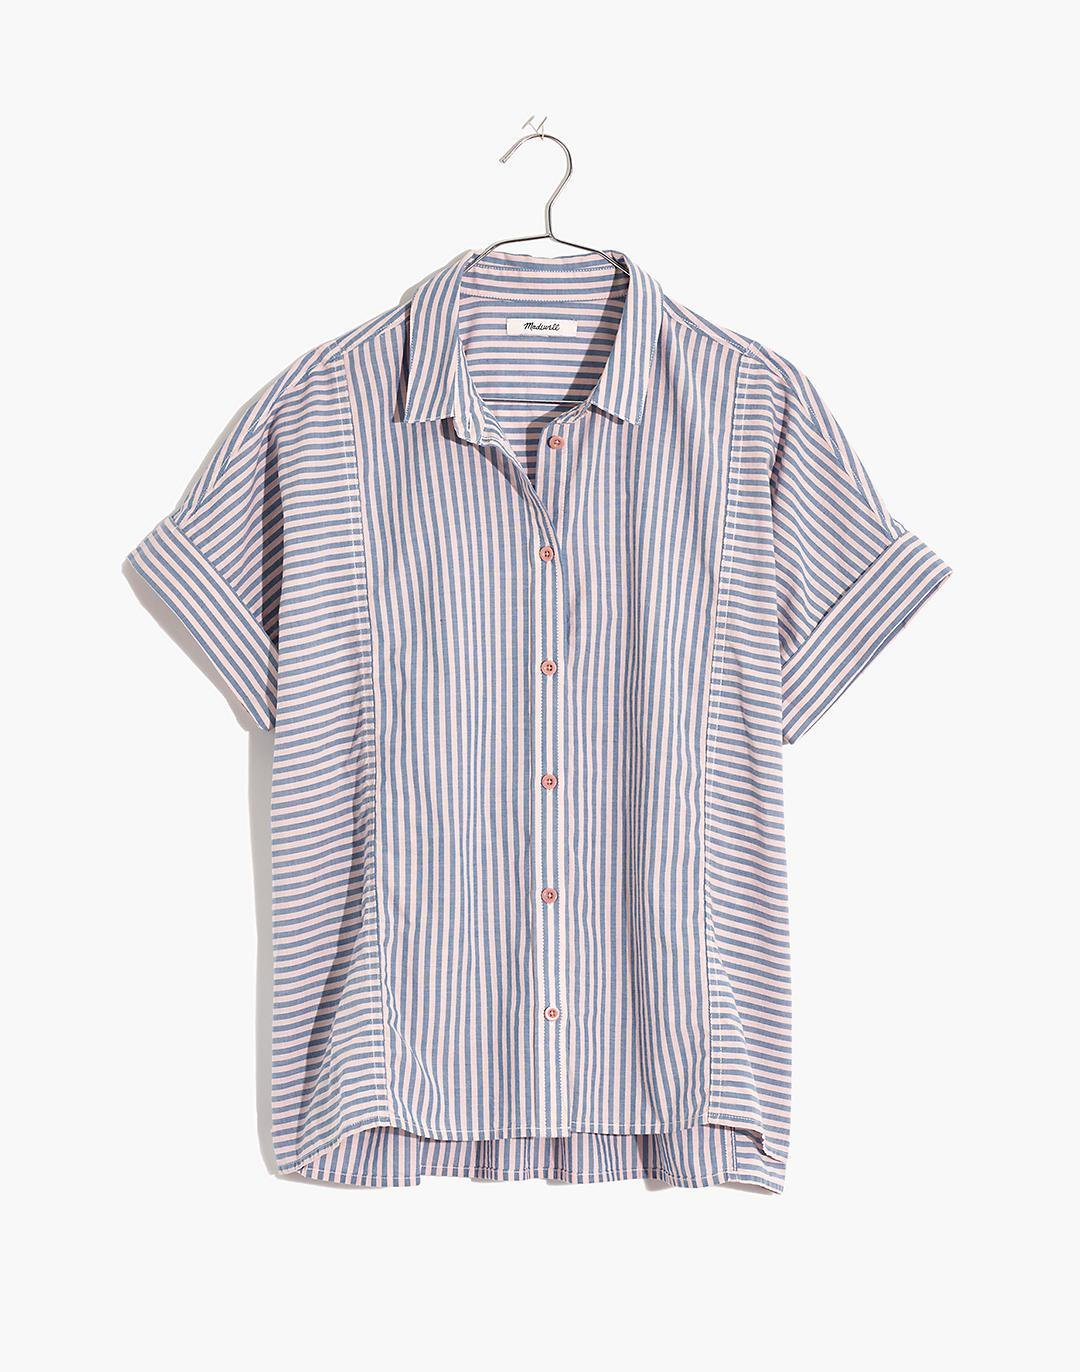 Lakeline Button-Up Shirt in Stripe-Play 3